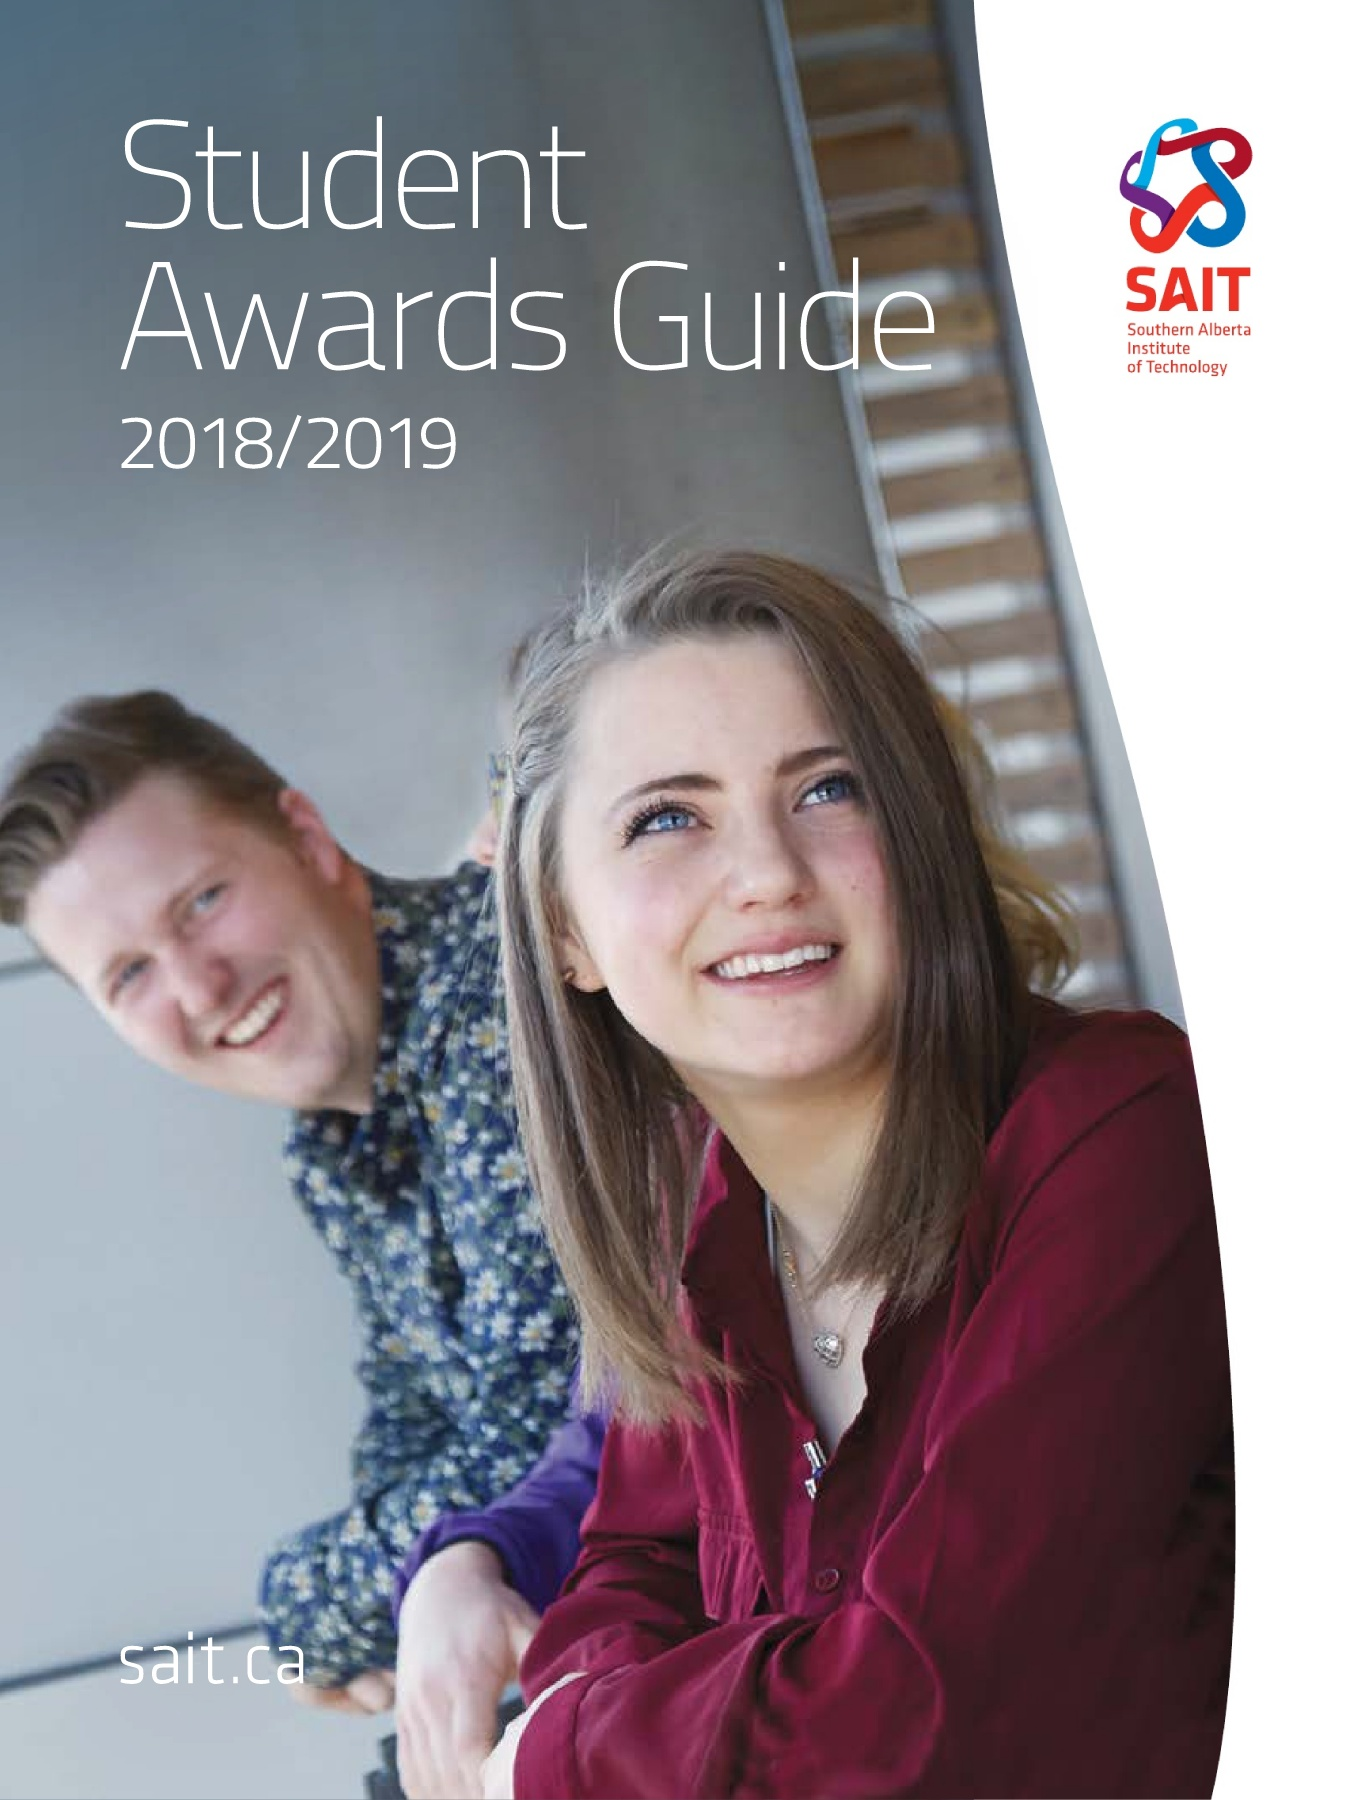 Student Award Guide 2018 2019 Pages 1 50 Text Version Anyflip